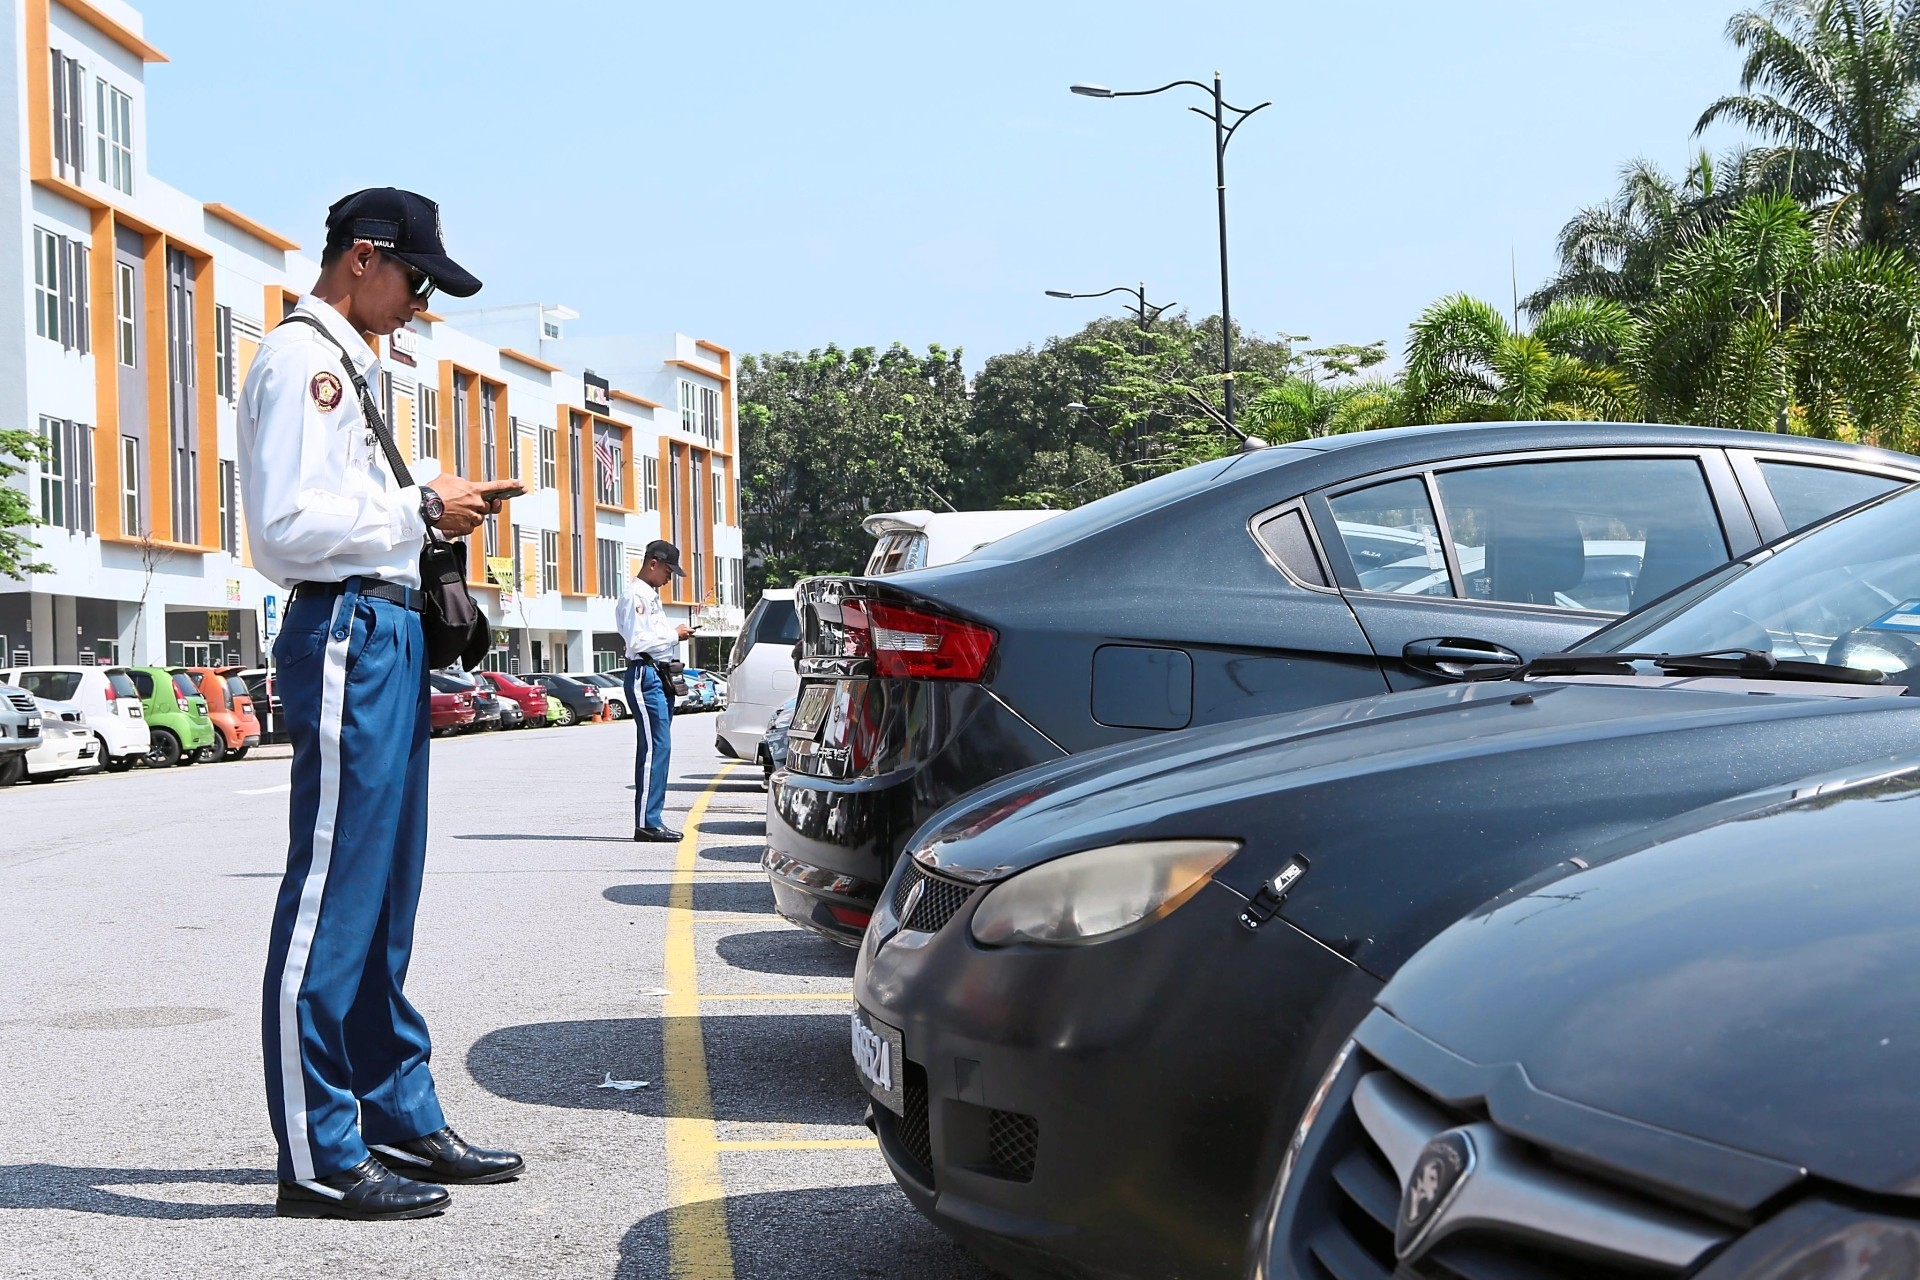 Council enforcement officers can check via the Smart Selangor Parking App if a car owner has paid the fee. —filepic